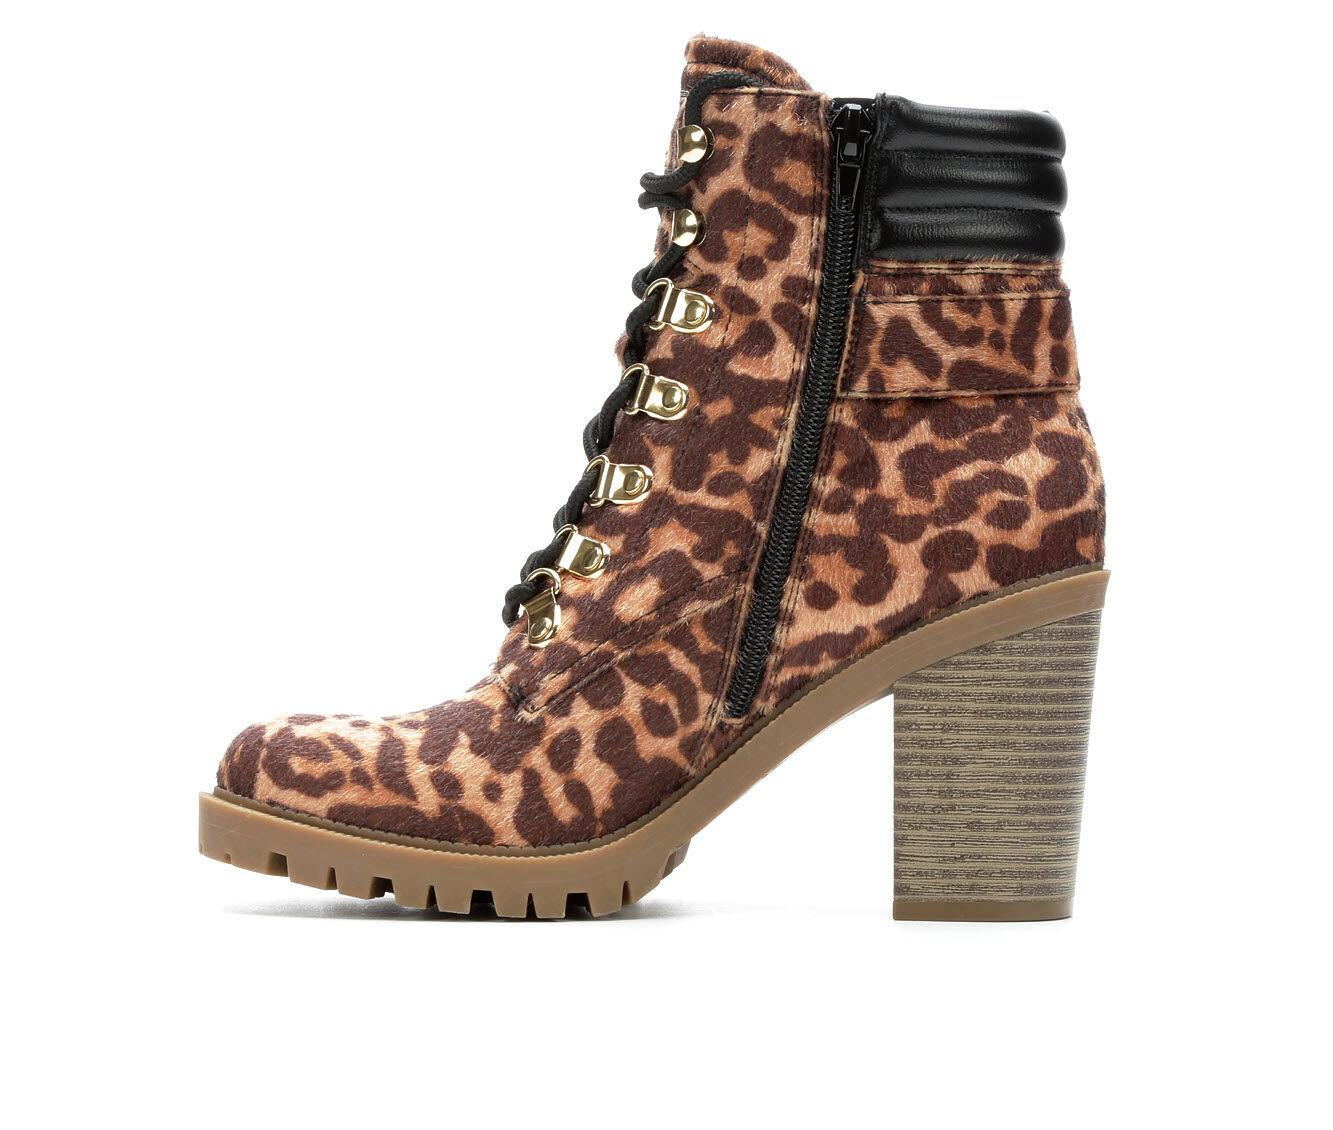 G by Guess Jaylee Boot in Leopard